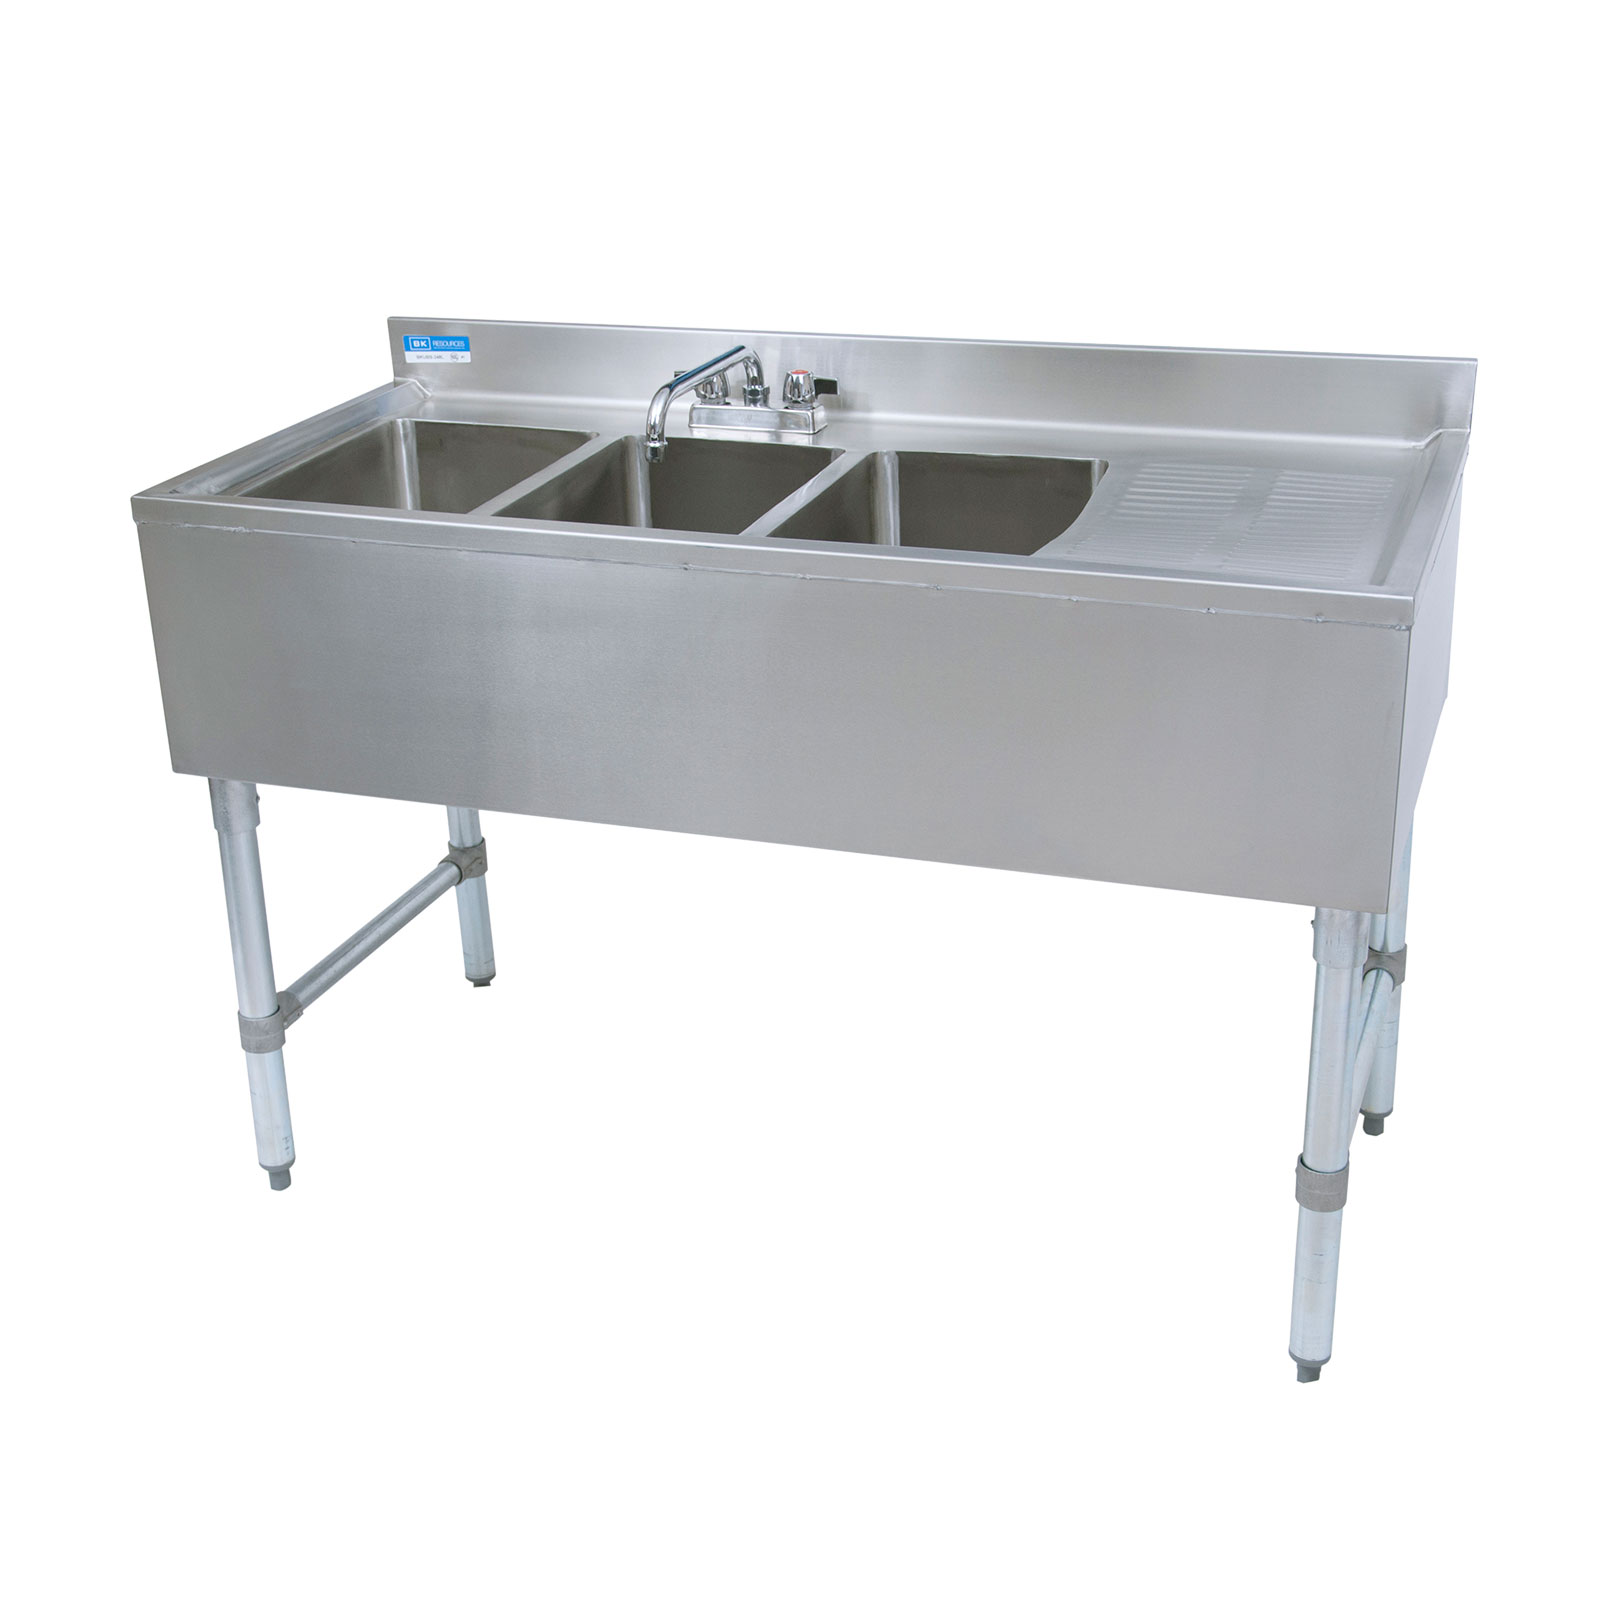 BK Resources BKUBS-348RS underbar sink units